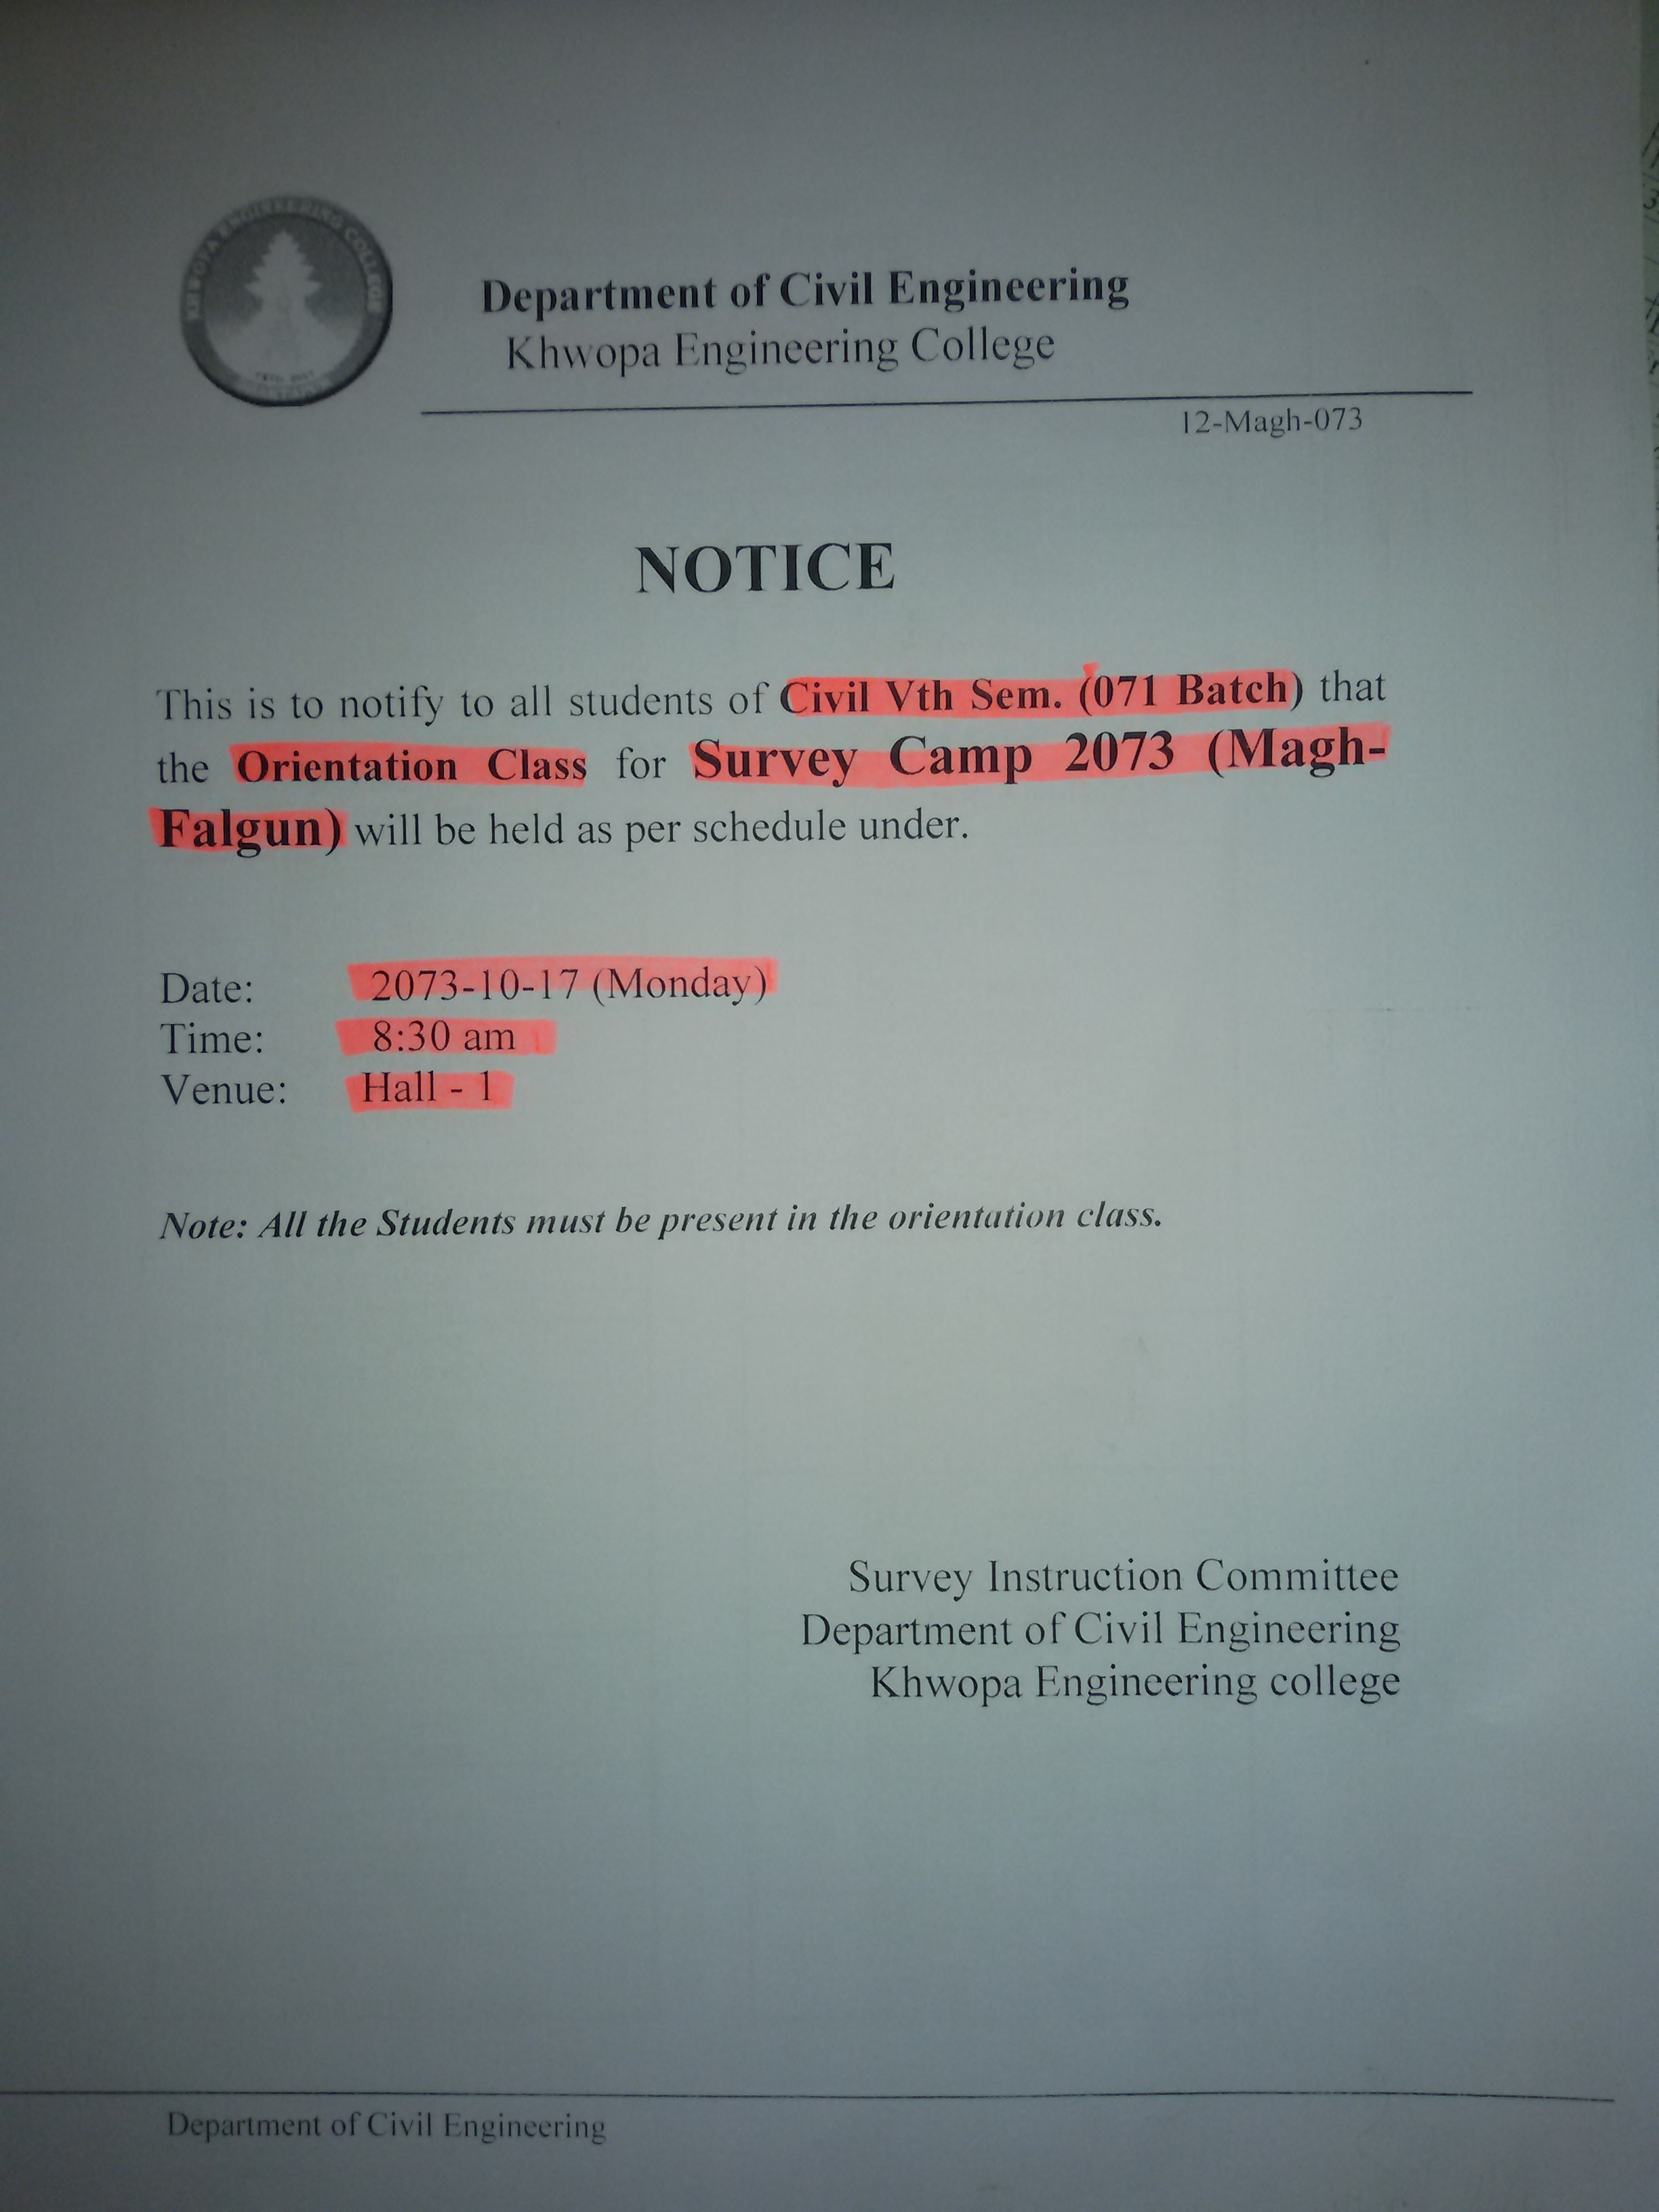 NOTICE TO CIVIL FIFTH SEMESTER STUDENTS  ABOUT SURVEY CAMP ORIENTATION